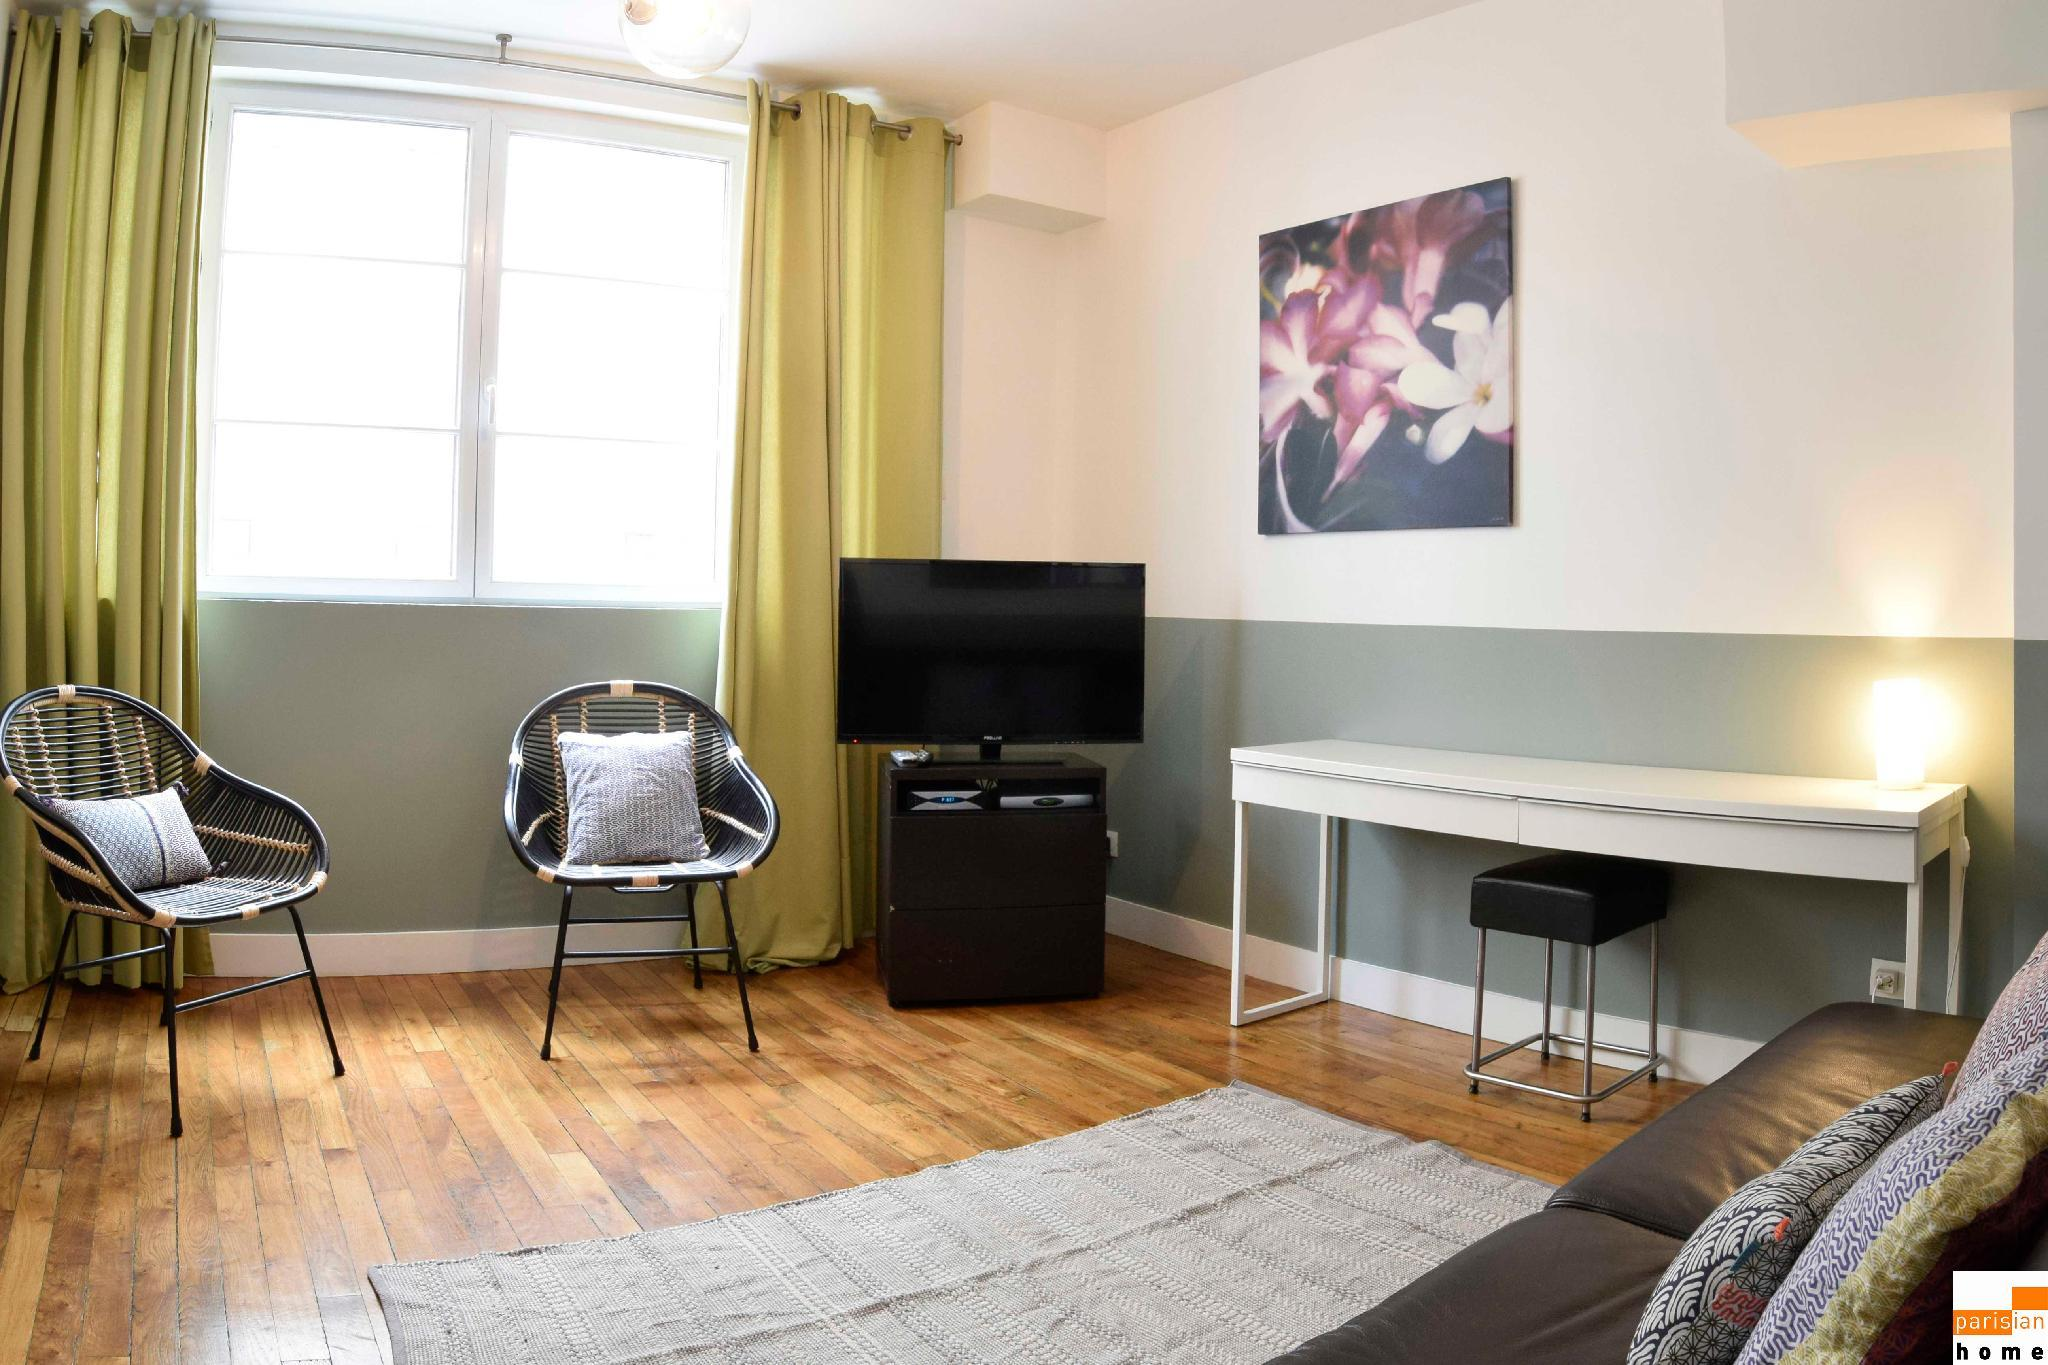 202907 - Comfortable apartment for 6 people near Les Halles